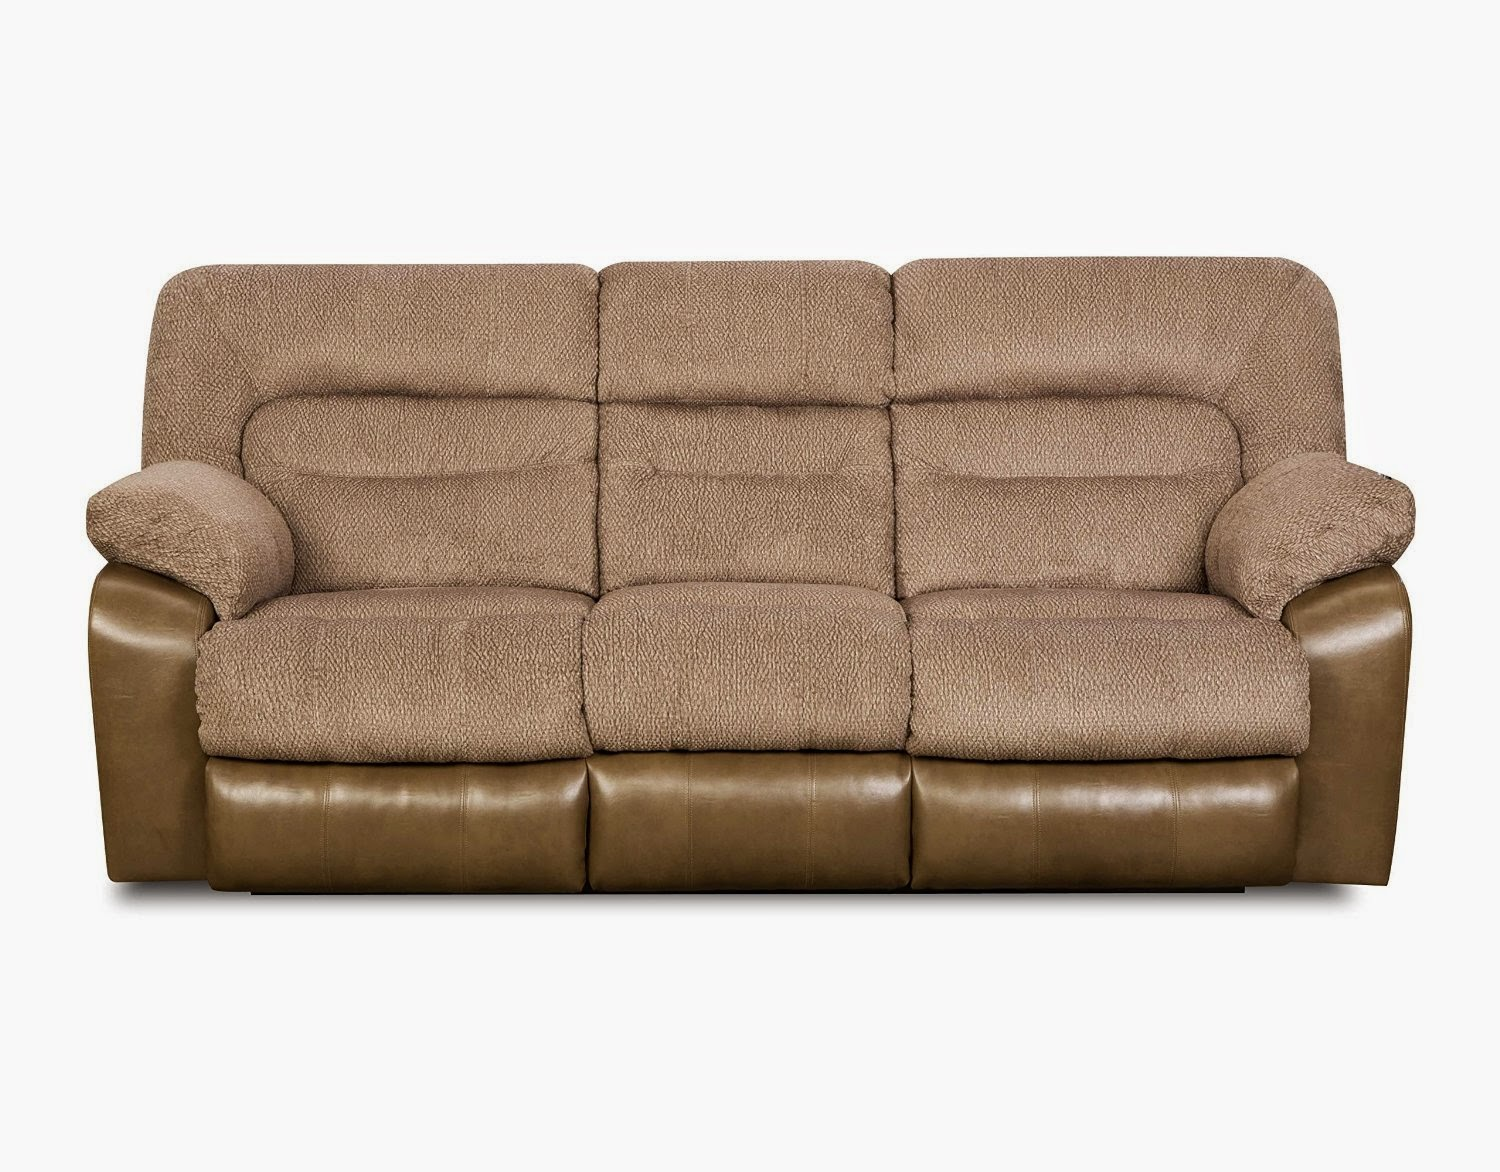 simmons blackjack cocoa reclining sofa and loveseat sectional sofas recliners small es chair sets